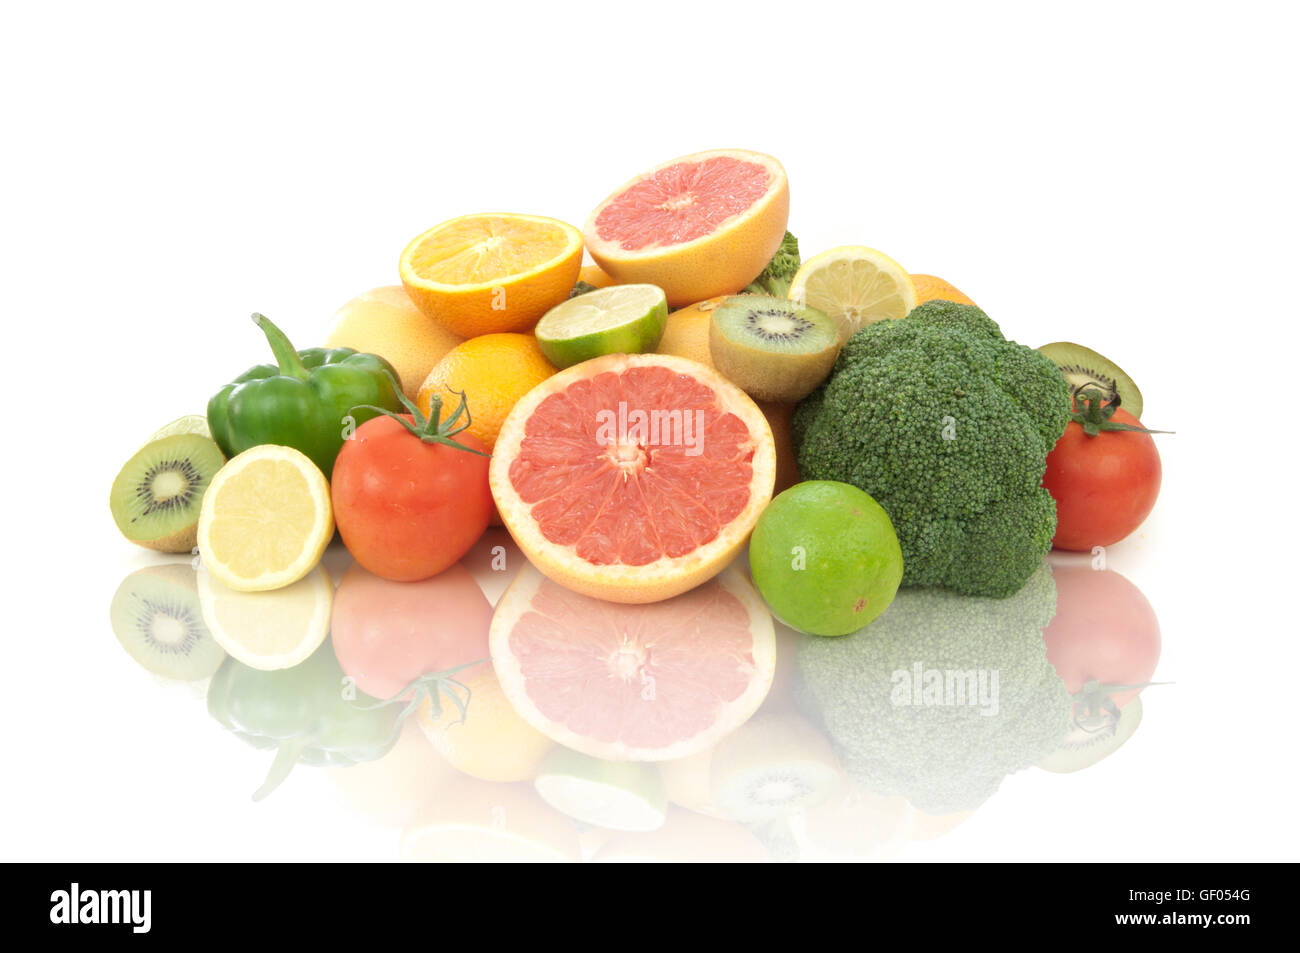 Selection of fruits and vegetables high in vitamin C over a white background - Stock Image